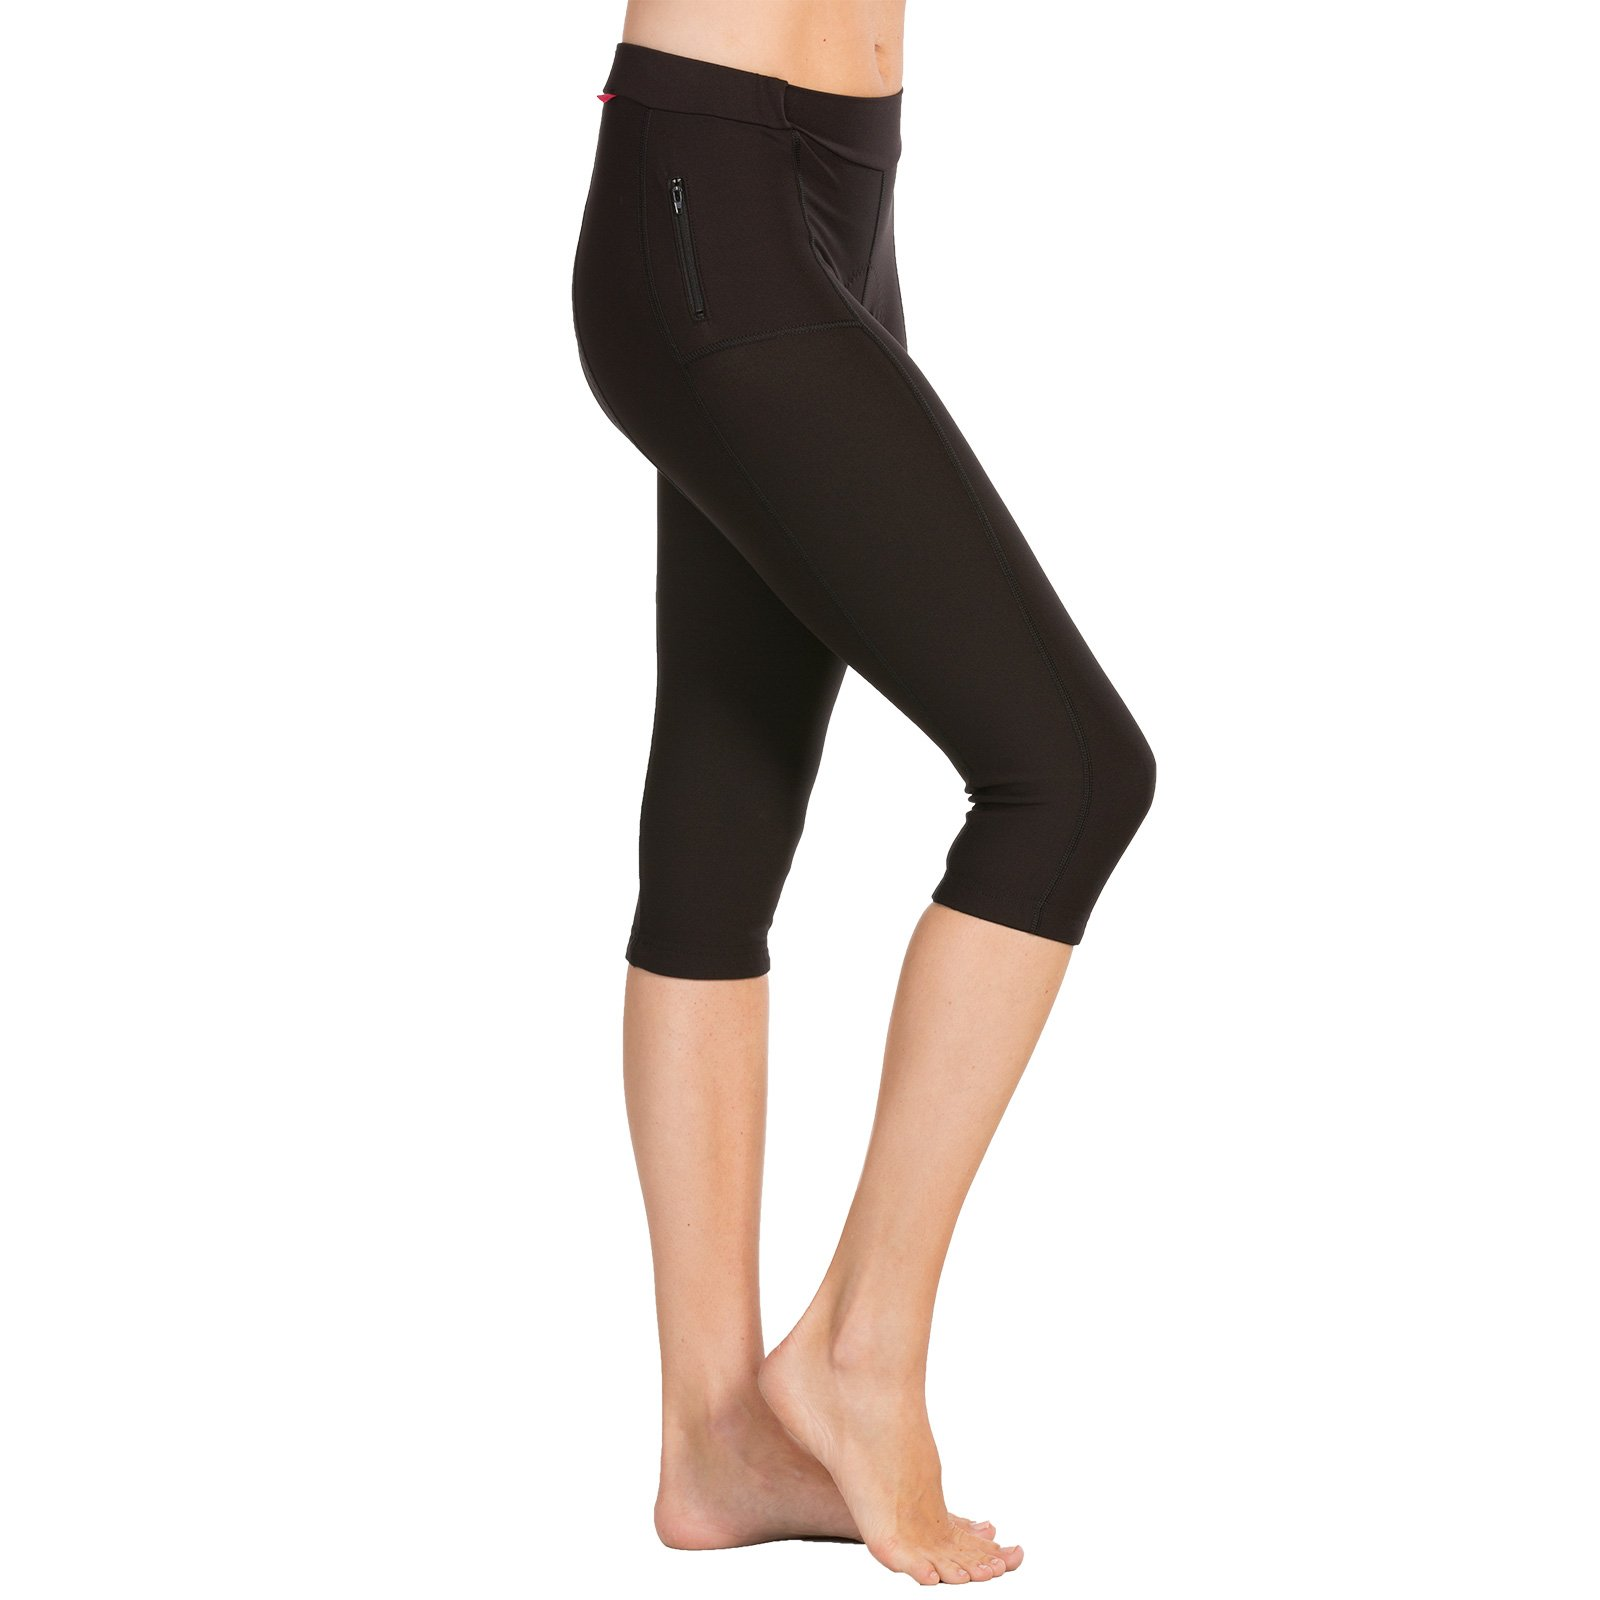 Terry Cycling Knickers For Women - One Of Our Most Popular Black Bike Bottoms For All-Season Riding - Black - Small by Terry (Image #2)